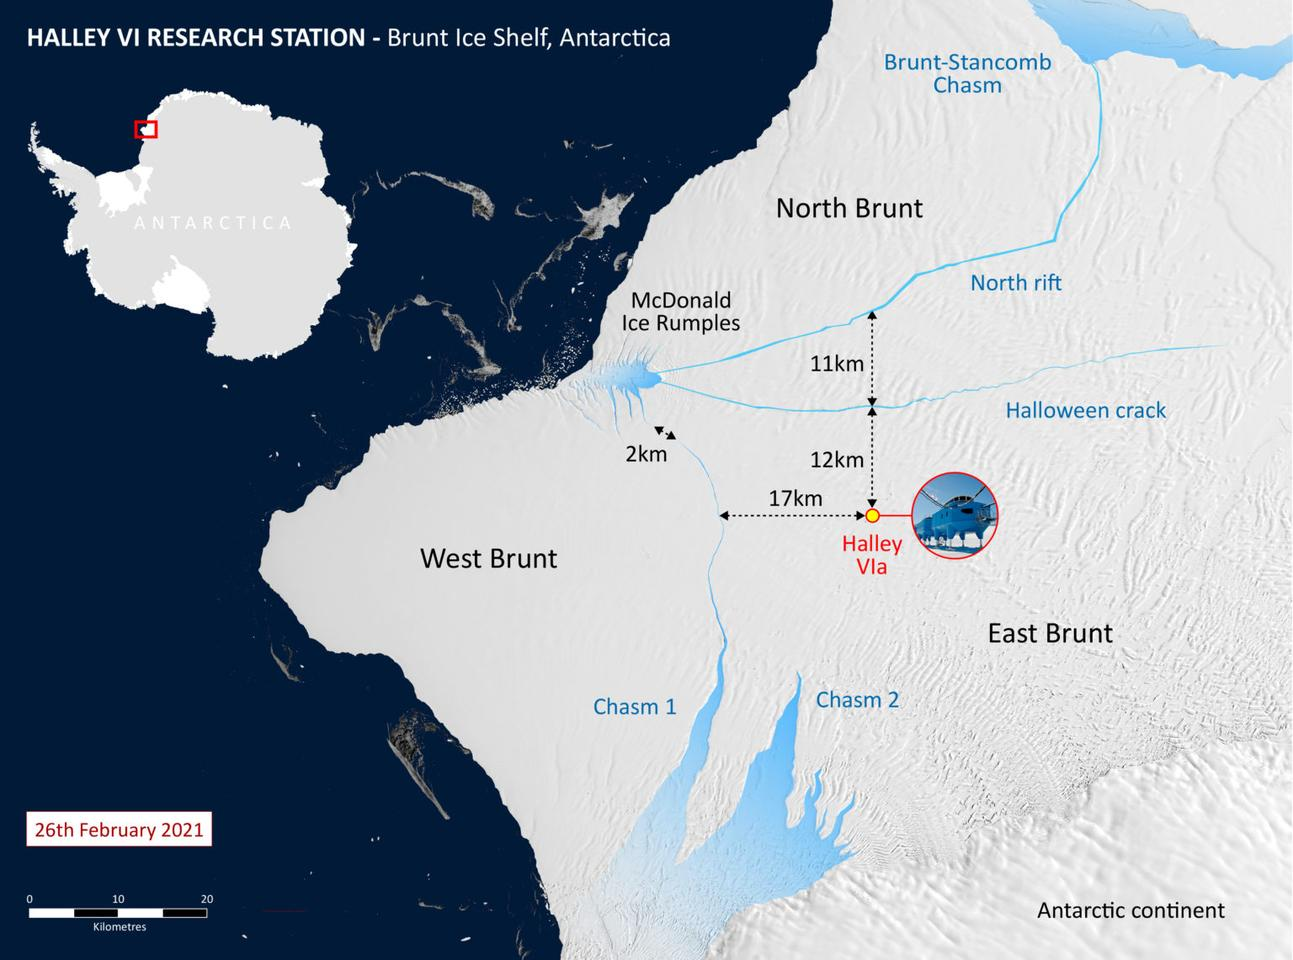 Map of the Brunt Ice Shelf showing the relocation of the Halley station